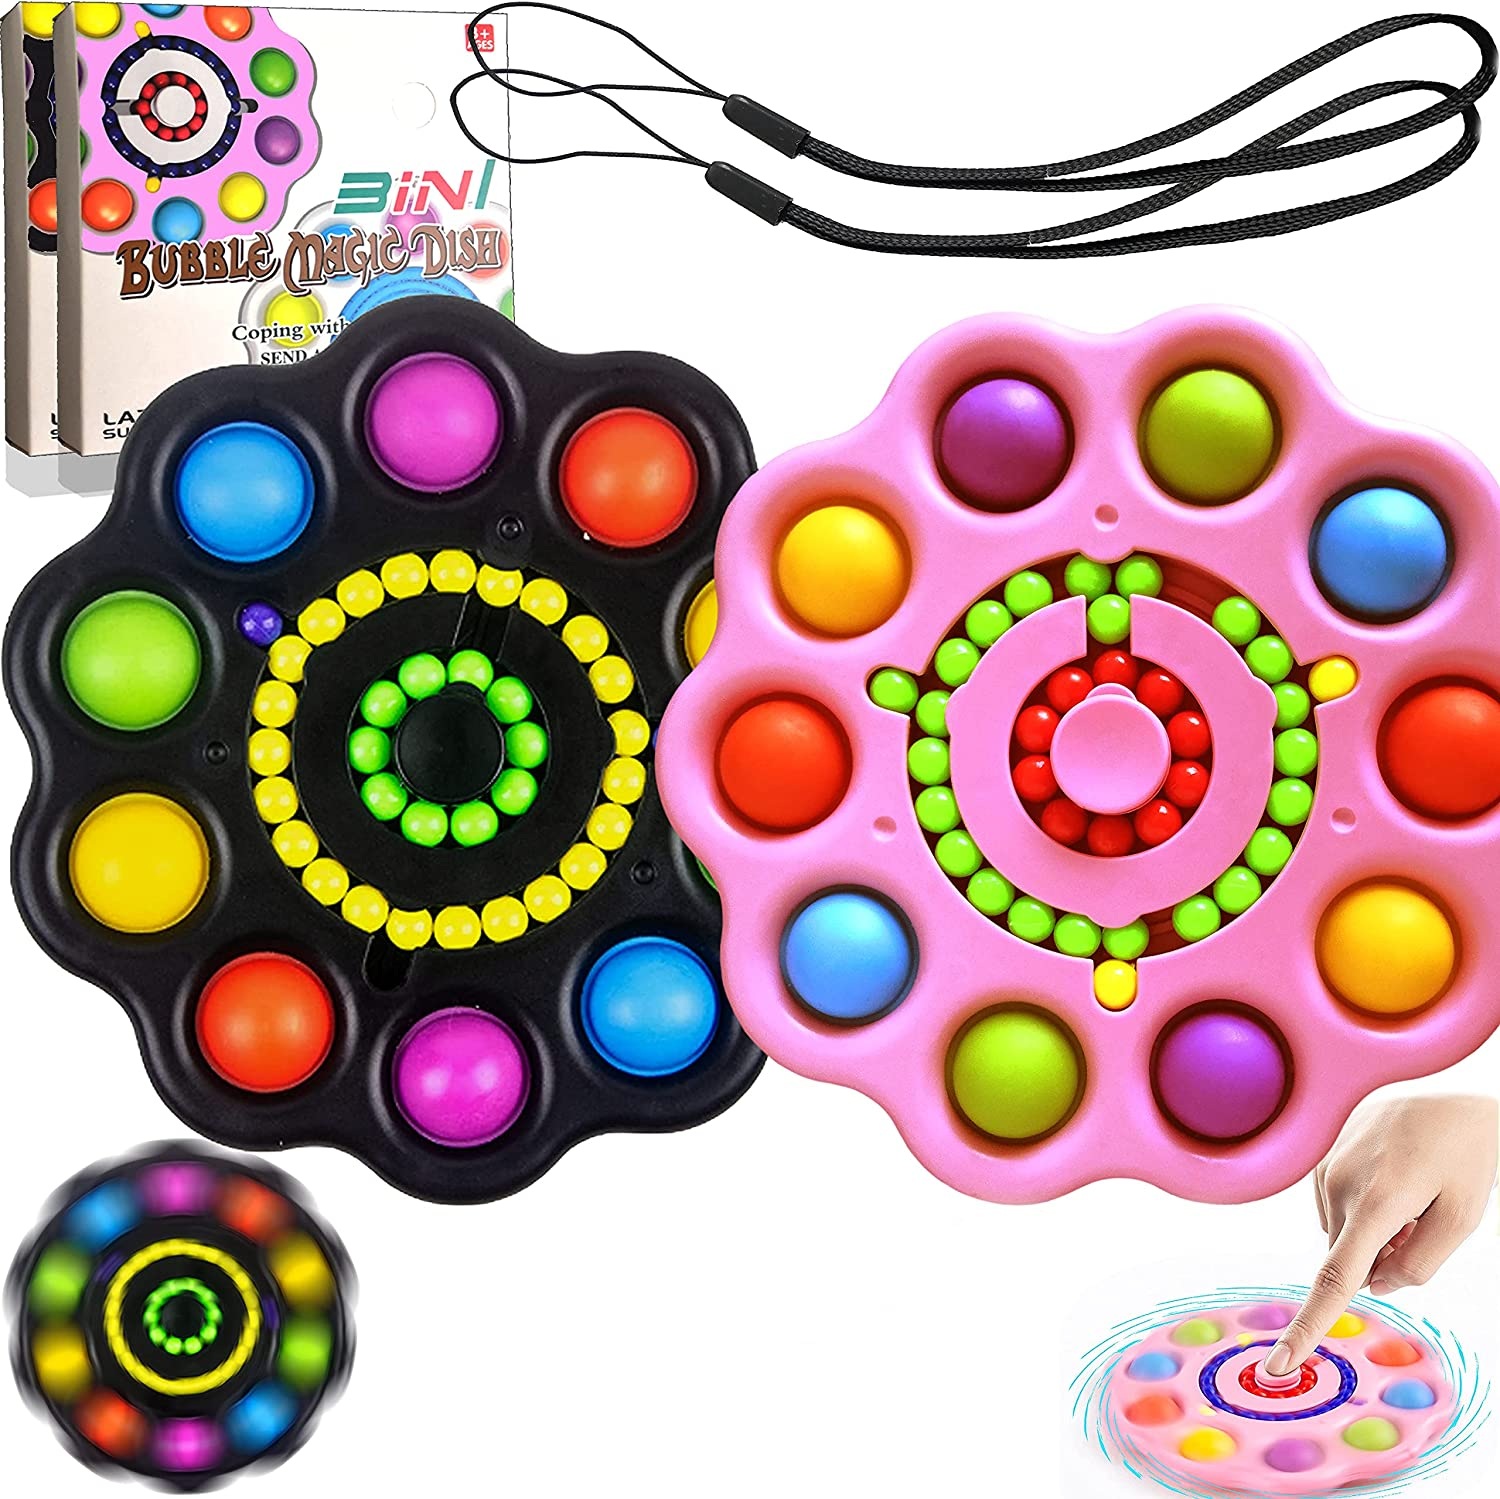 RQLDEMLM Flower Simple Courier shipping free Dimple Spasm price Fidget Bubble Toy Fidg Magic